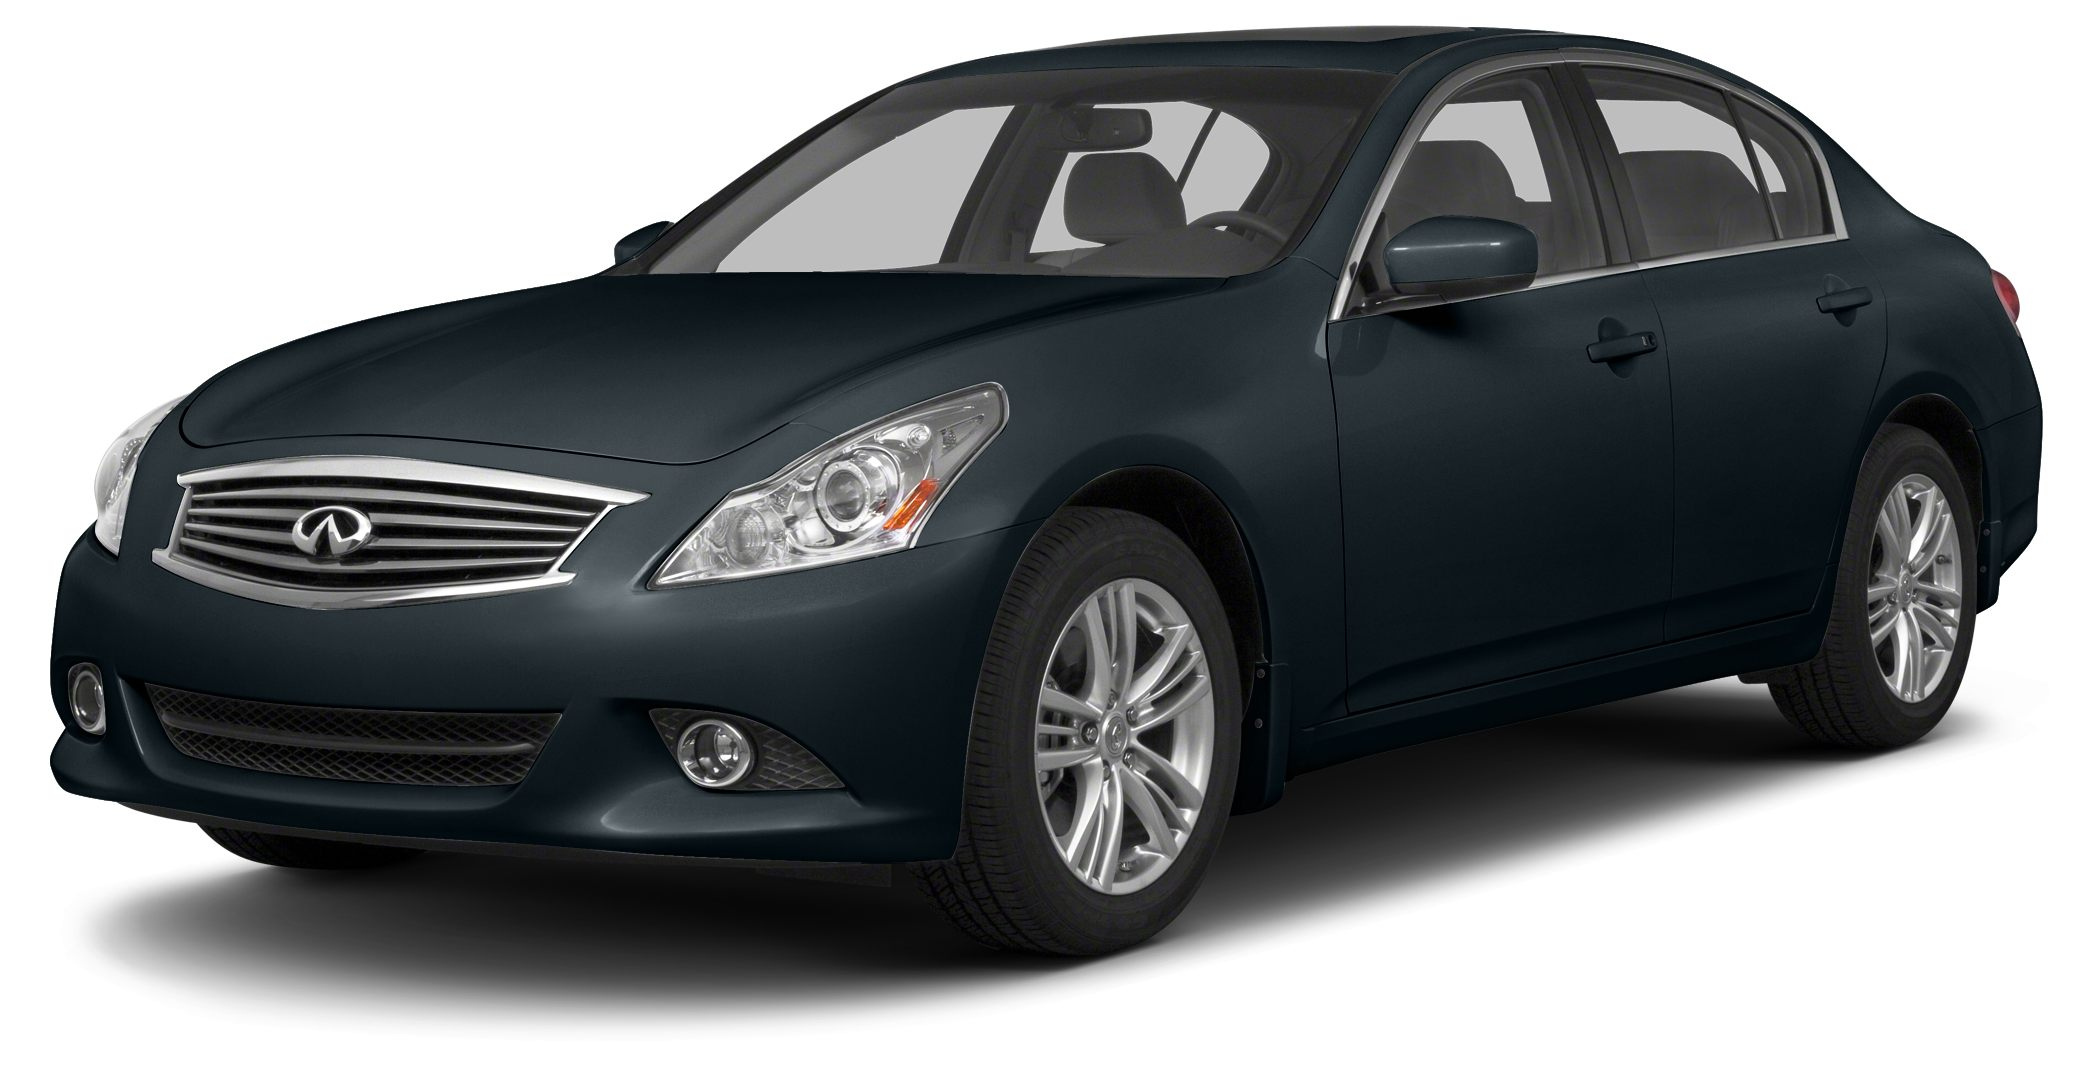 2013 Infiniti G37 Journey This 2013 Infiniti G37 Sedan 4dr 4dr Journey RWD features a 37L V6 CYLI